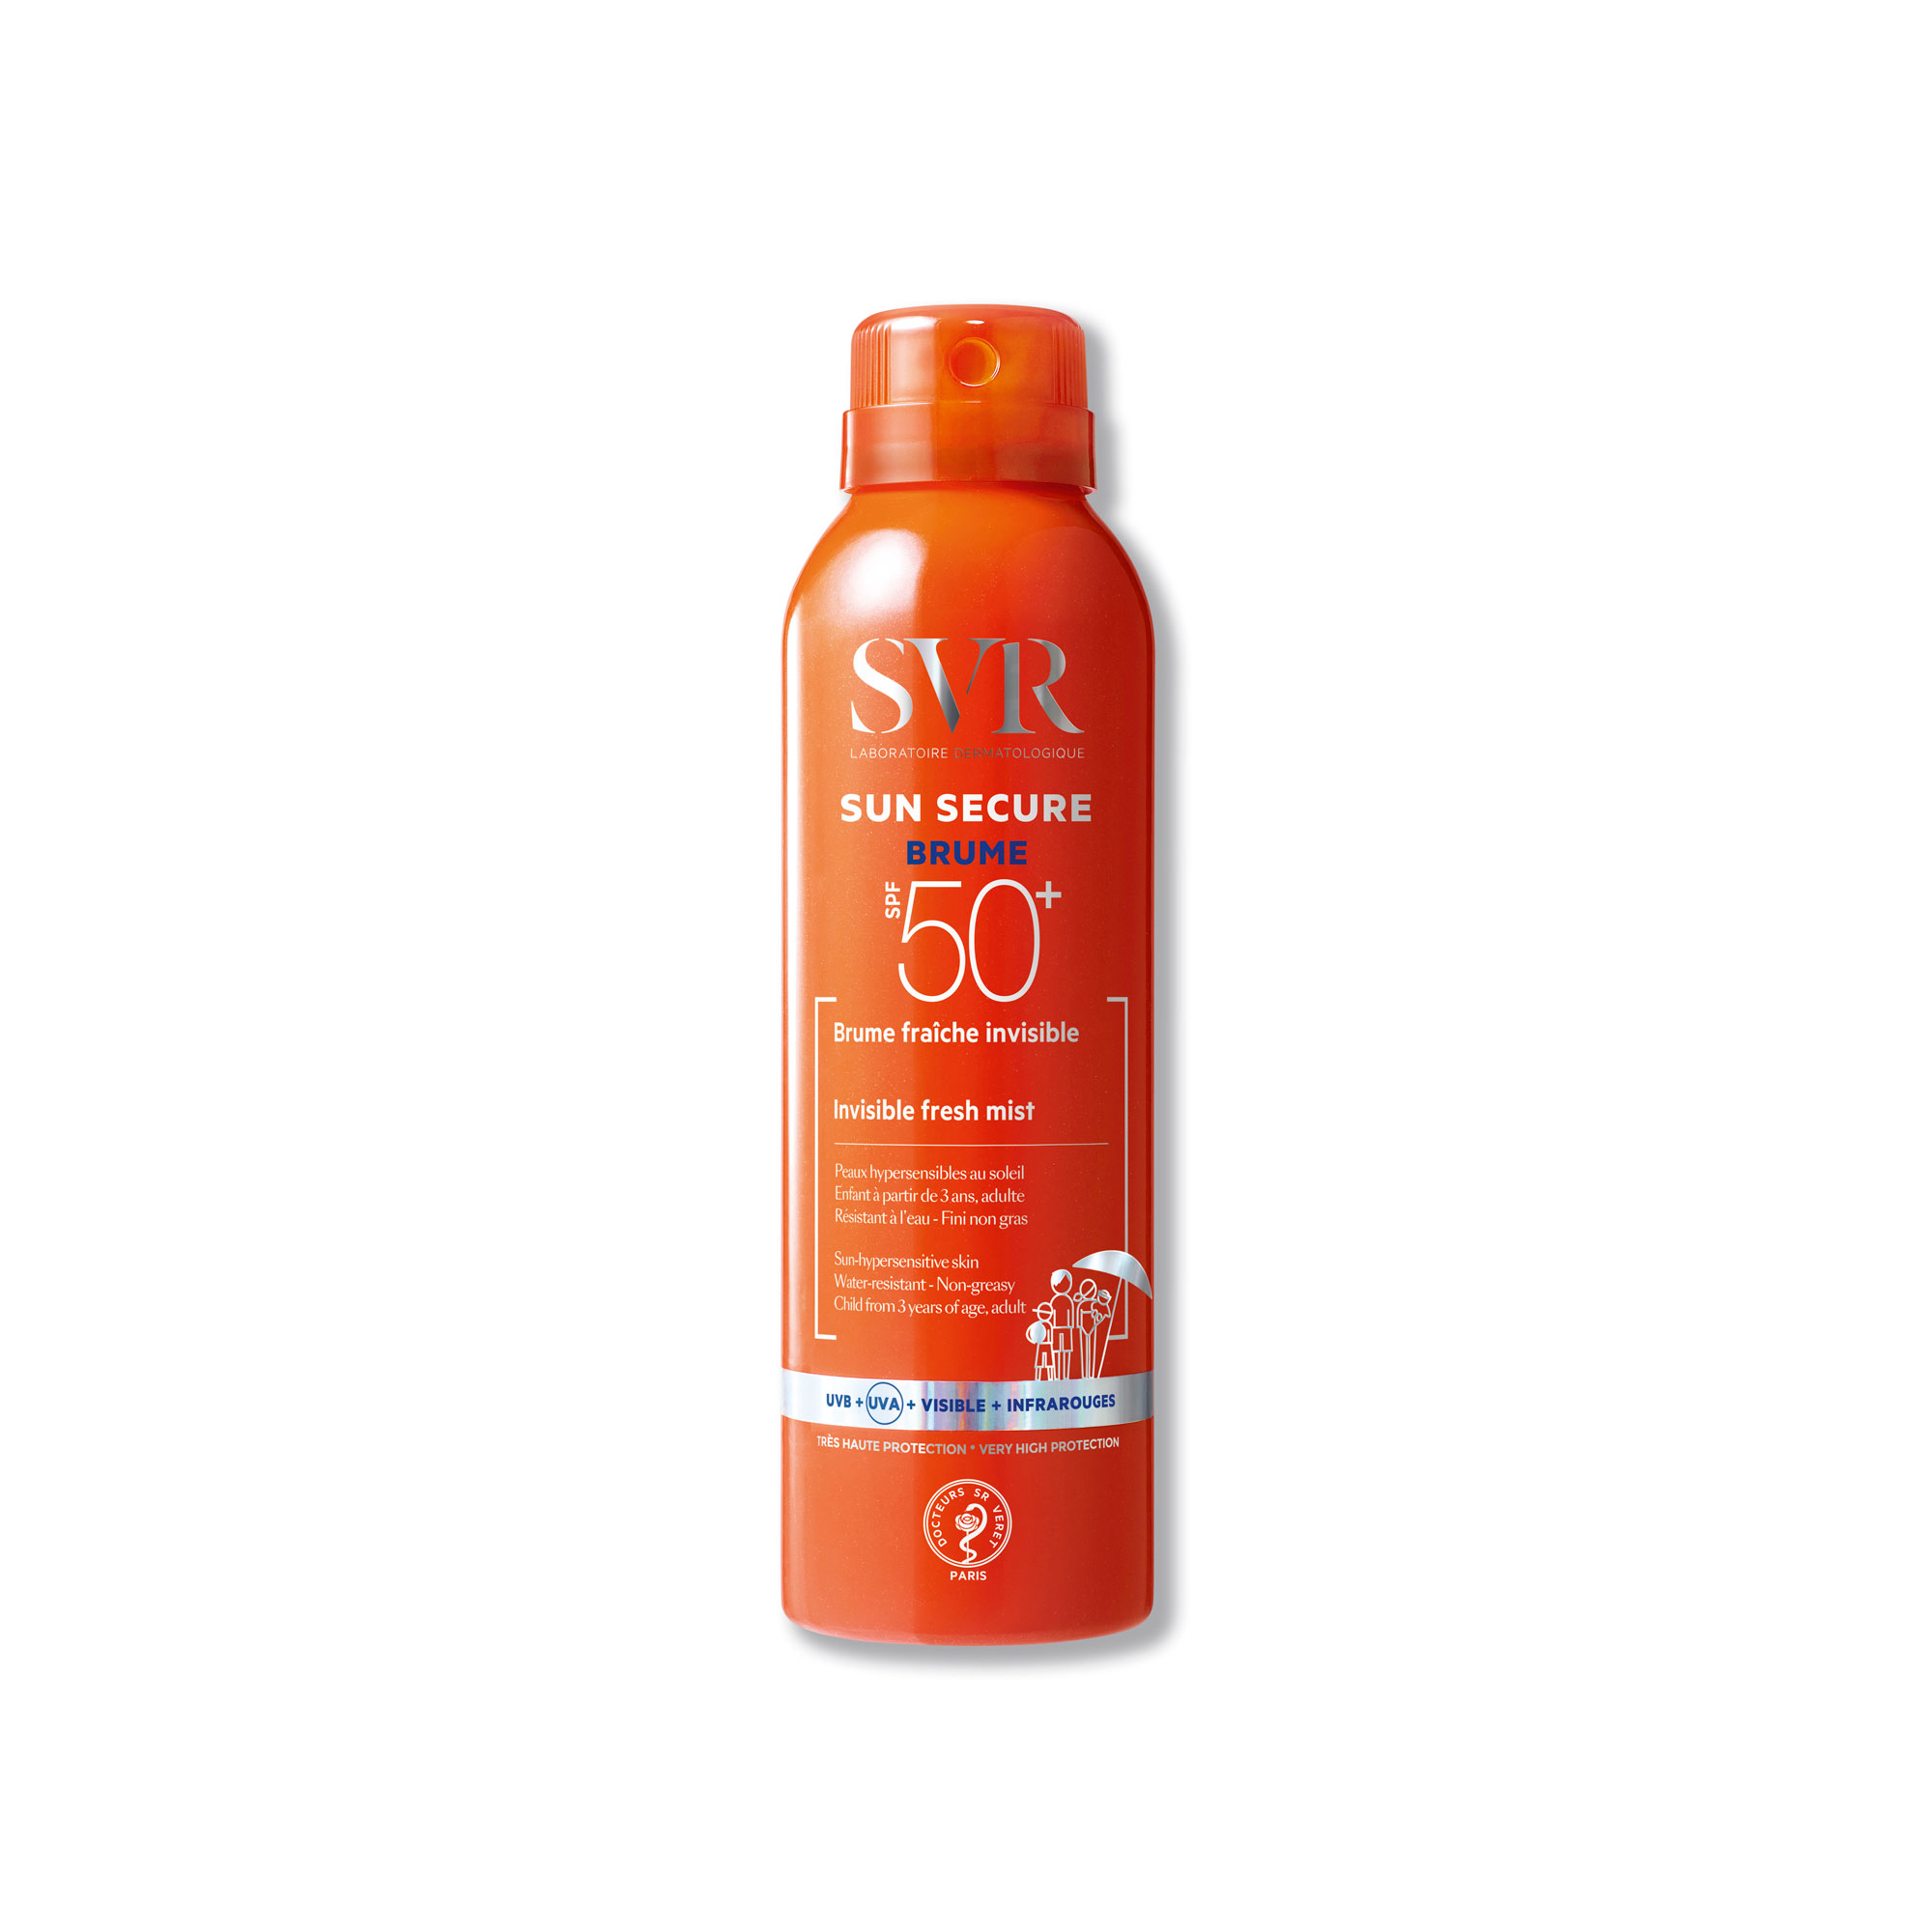 SVR SUN SECURE BRUMA SPF50+ 200ML